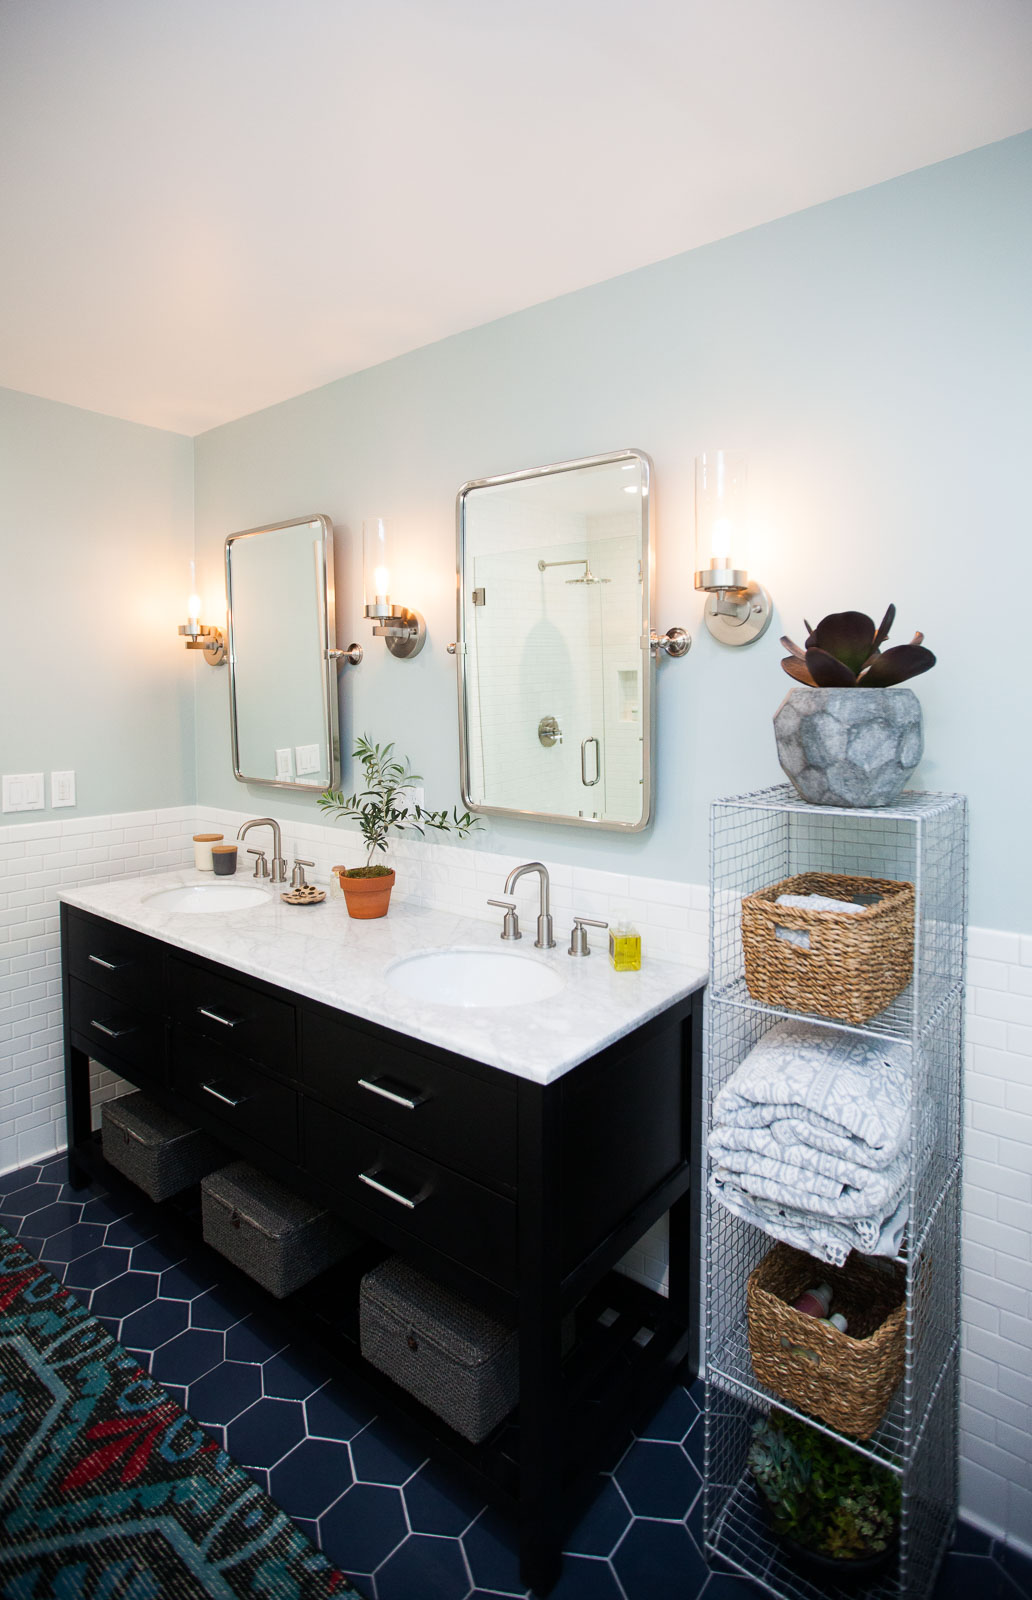 Master Bathroom Renovation Before After Gt The Effortless Chic